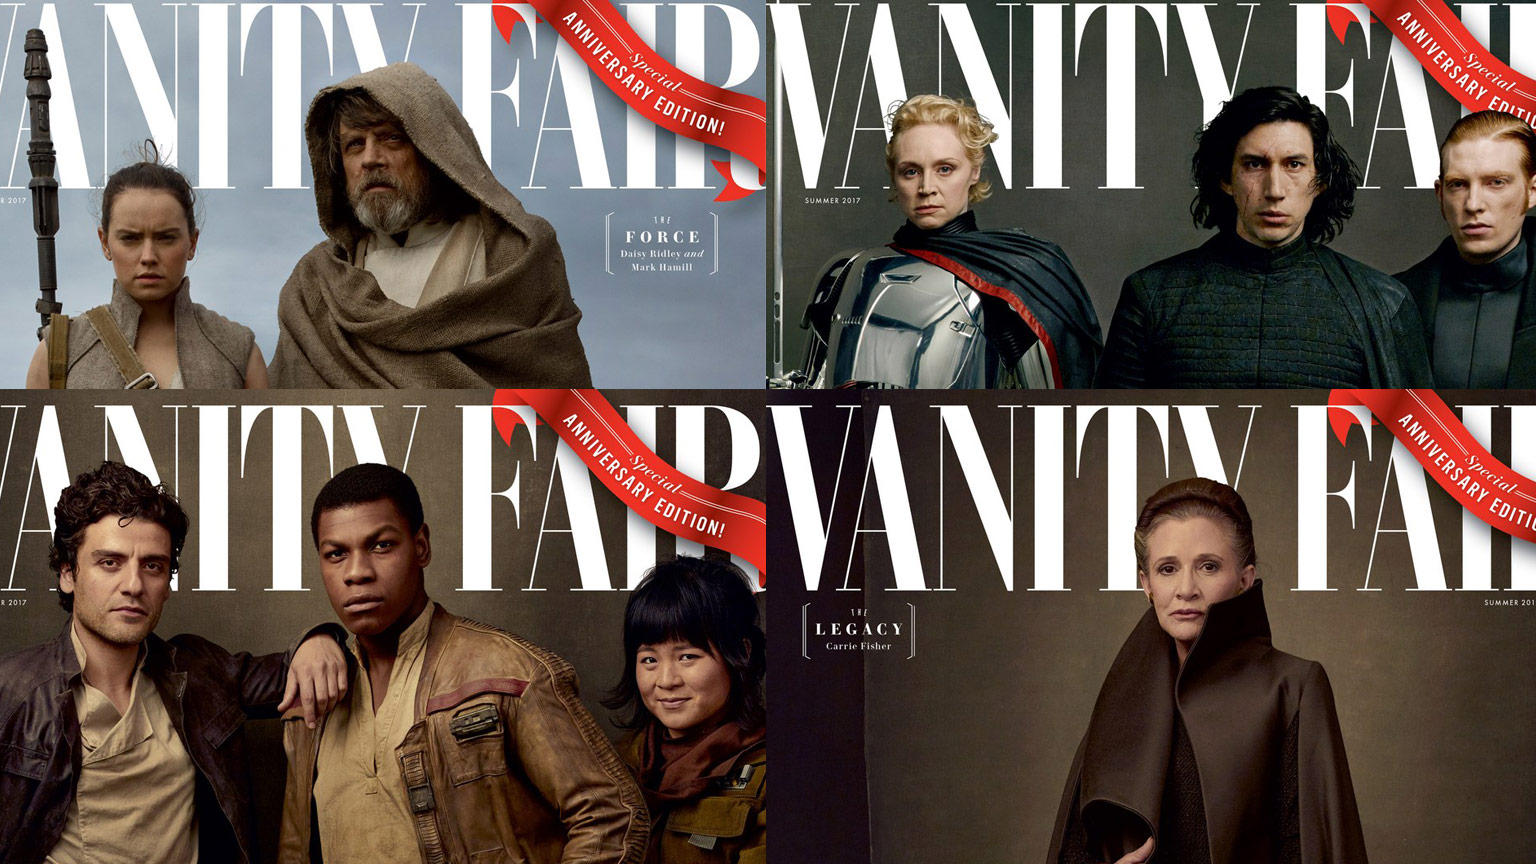 First Look At Star Wars: The Last Jedi Vanity Fair Covers